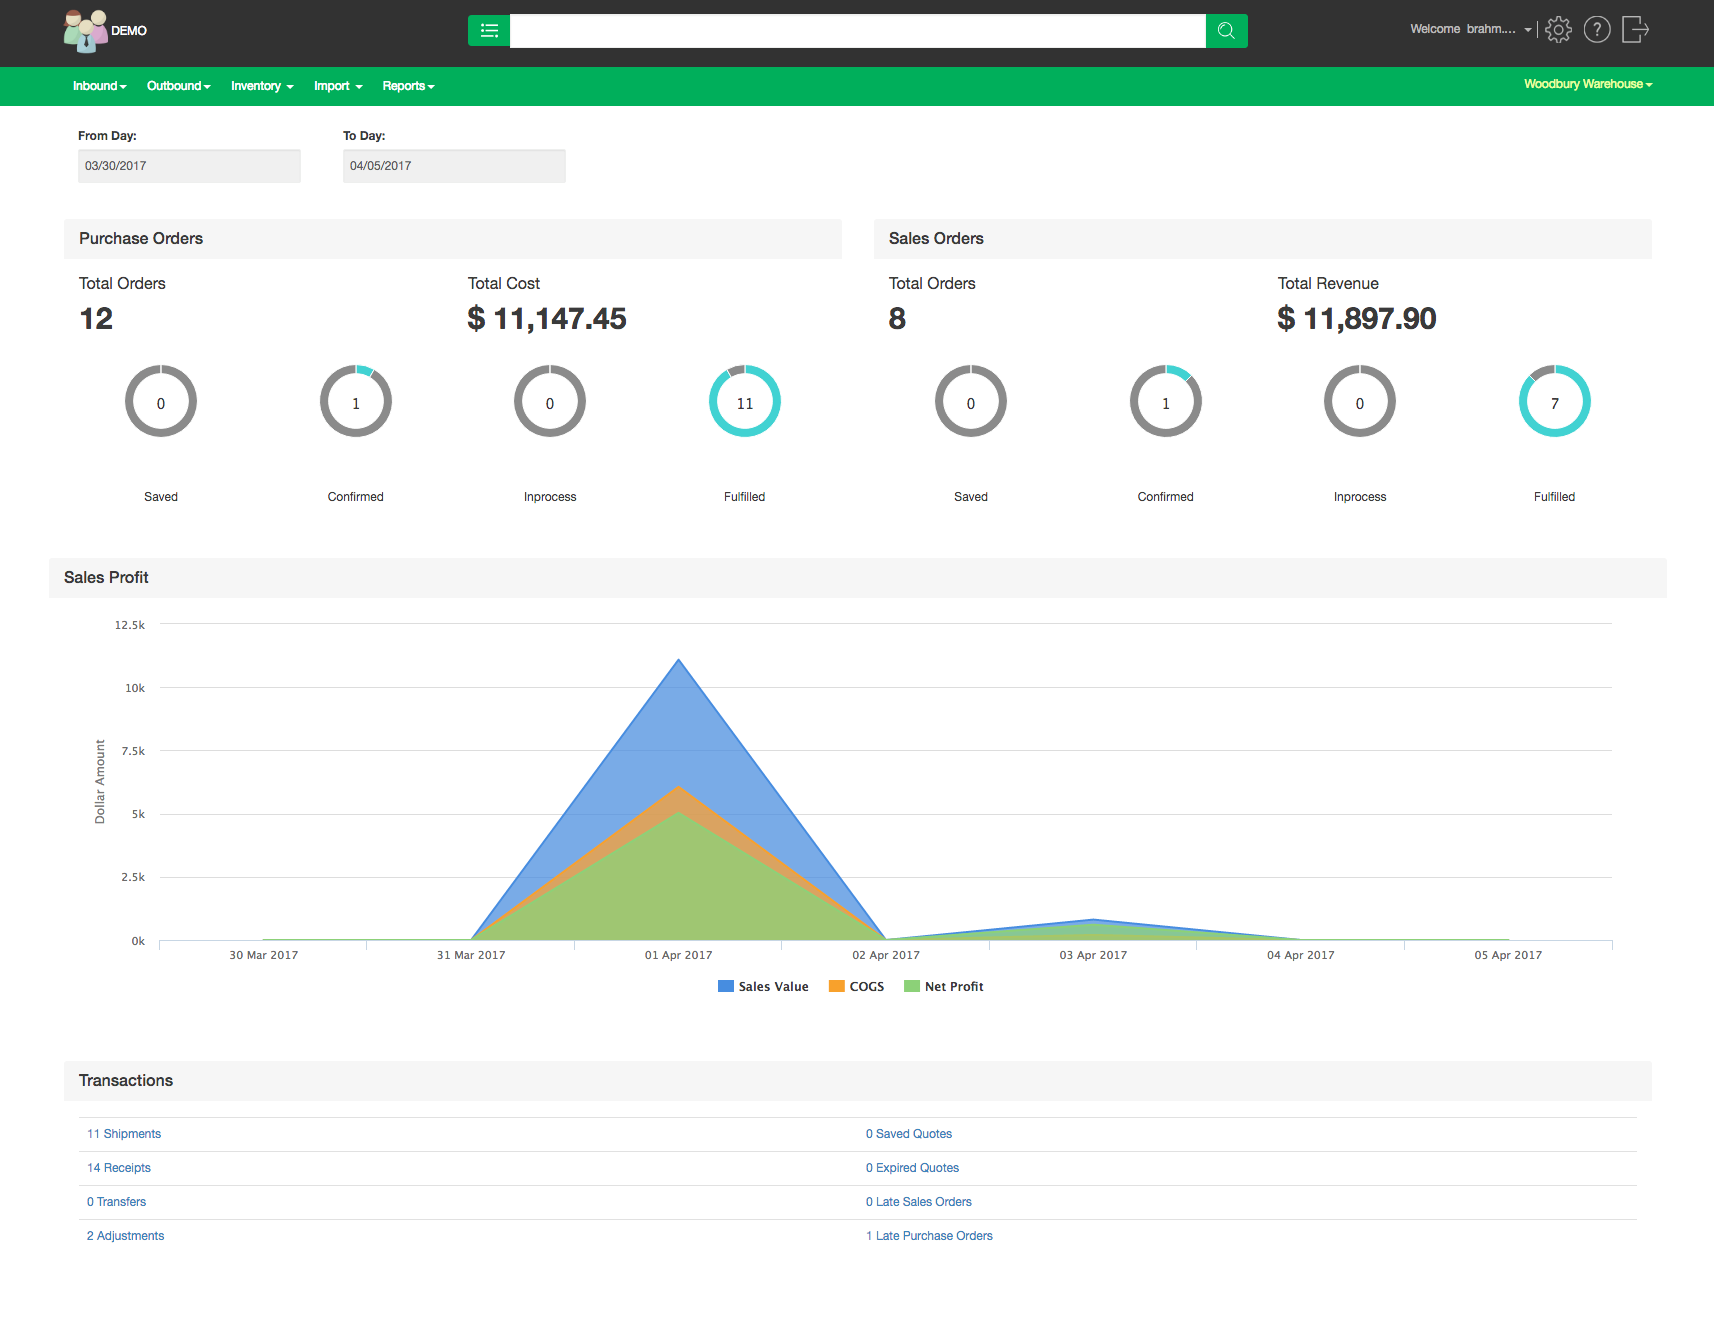 The dashboard gives users insight into transactions, purchase orders, profit, and more